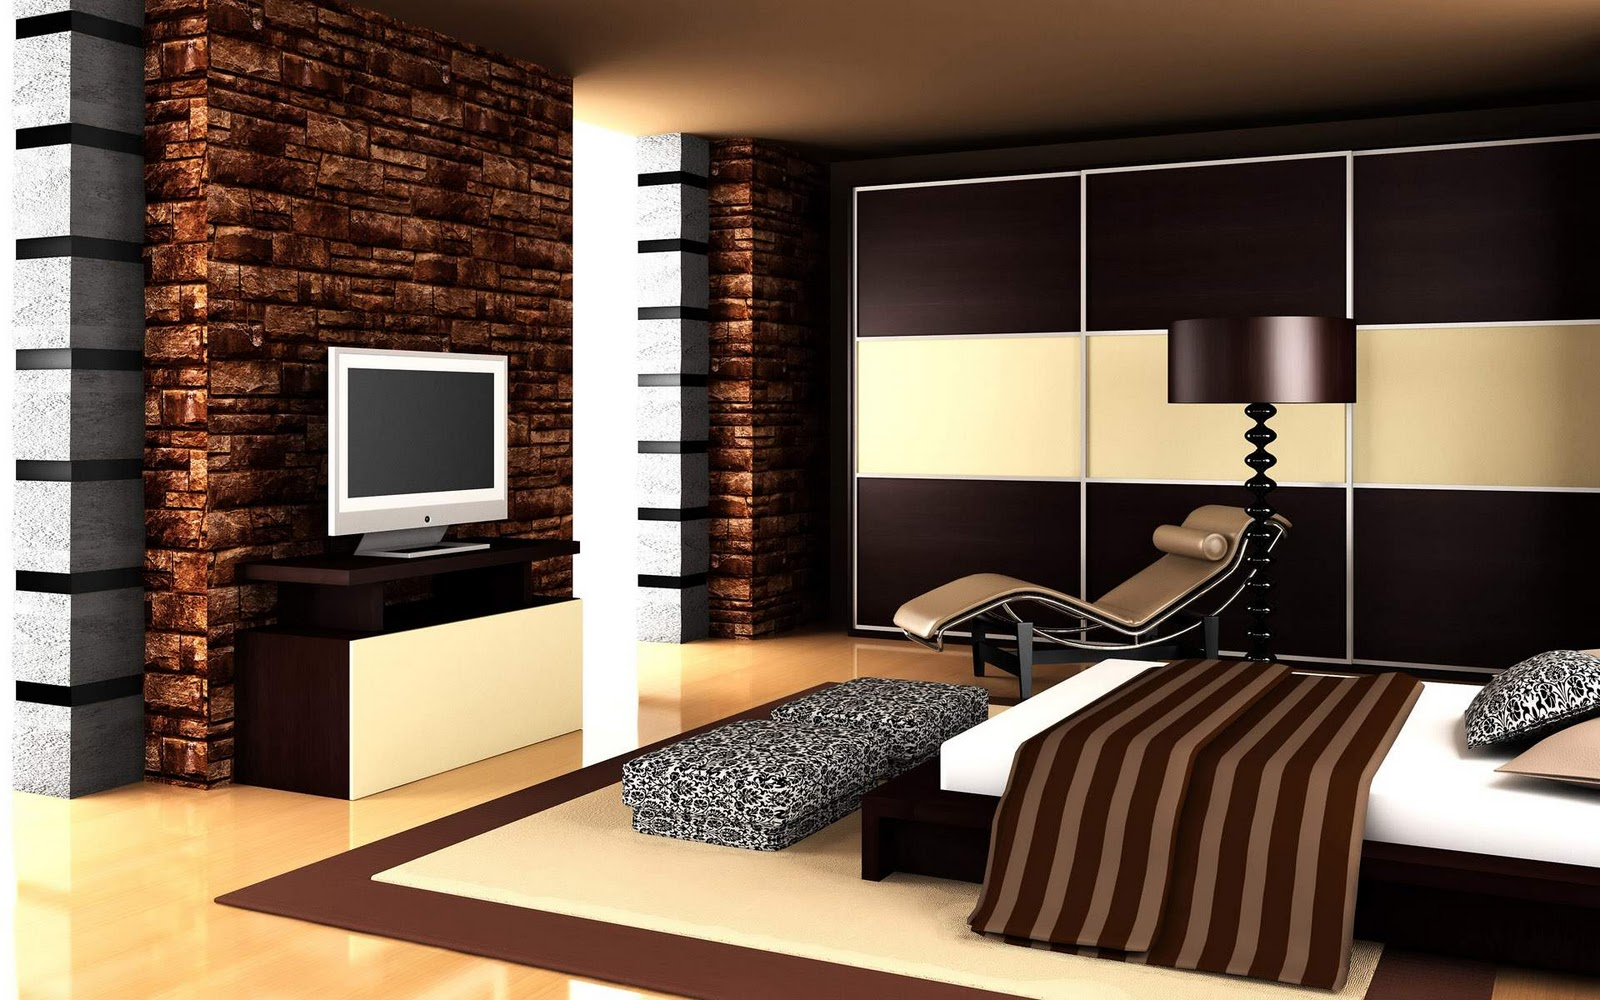 http://2.bp.blogspot.com/-LGzzgME8GVI/Tm2dDS2Jg3I/AAAAAAAABIY/wssMrc4B-Io/s1600/Wonderful-Bed-Room-Interior-Ideas-with-Wallpapers33.jpg